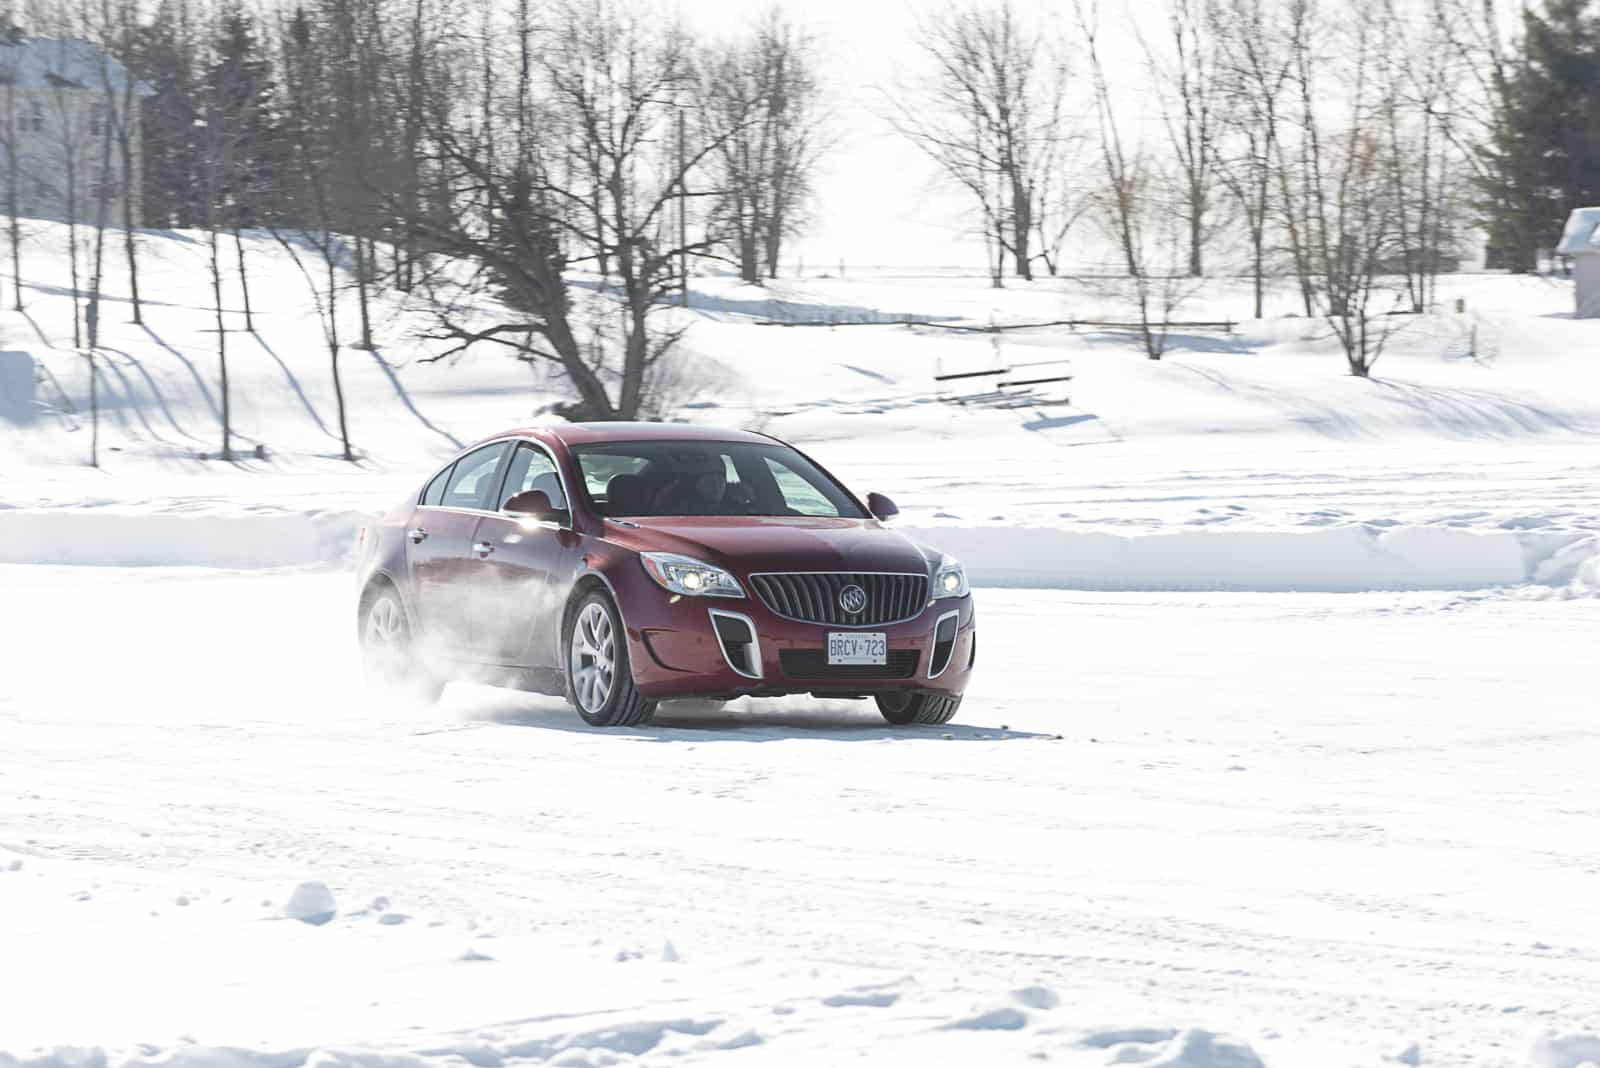 winter driving safety 5 quick tips